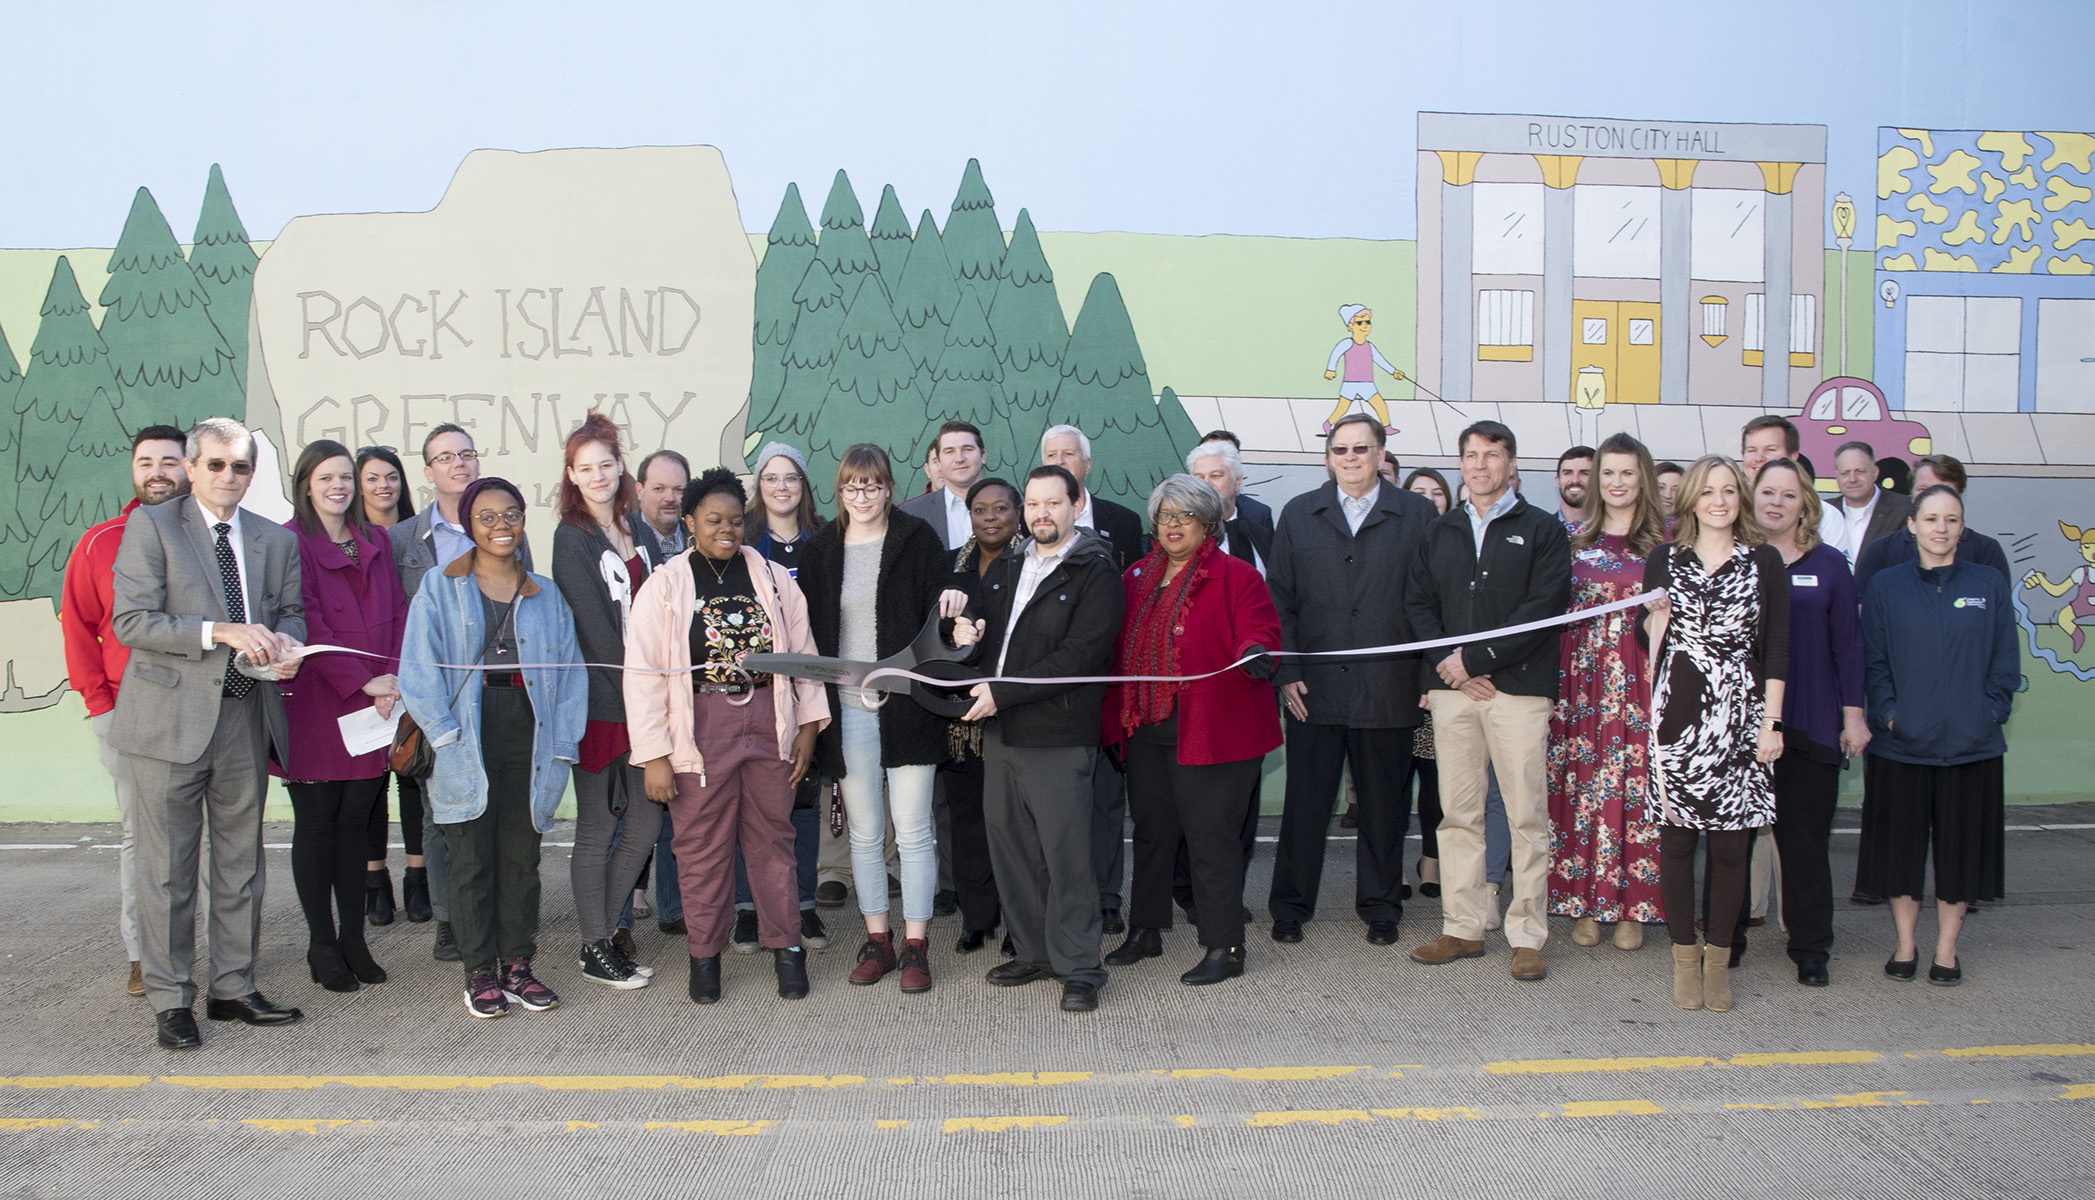 Rock Island Greenway Mural Ribbon Cutting